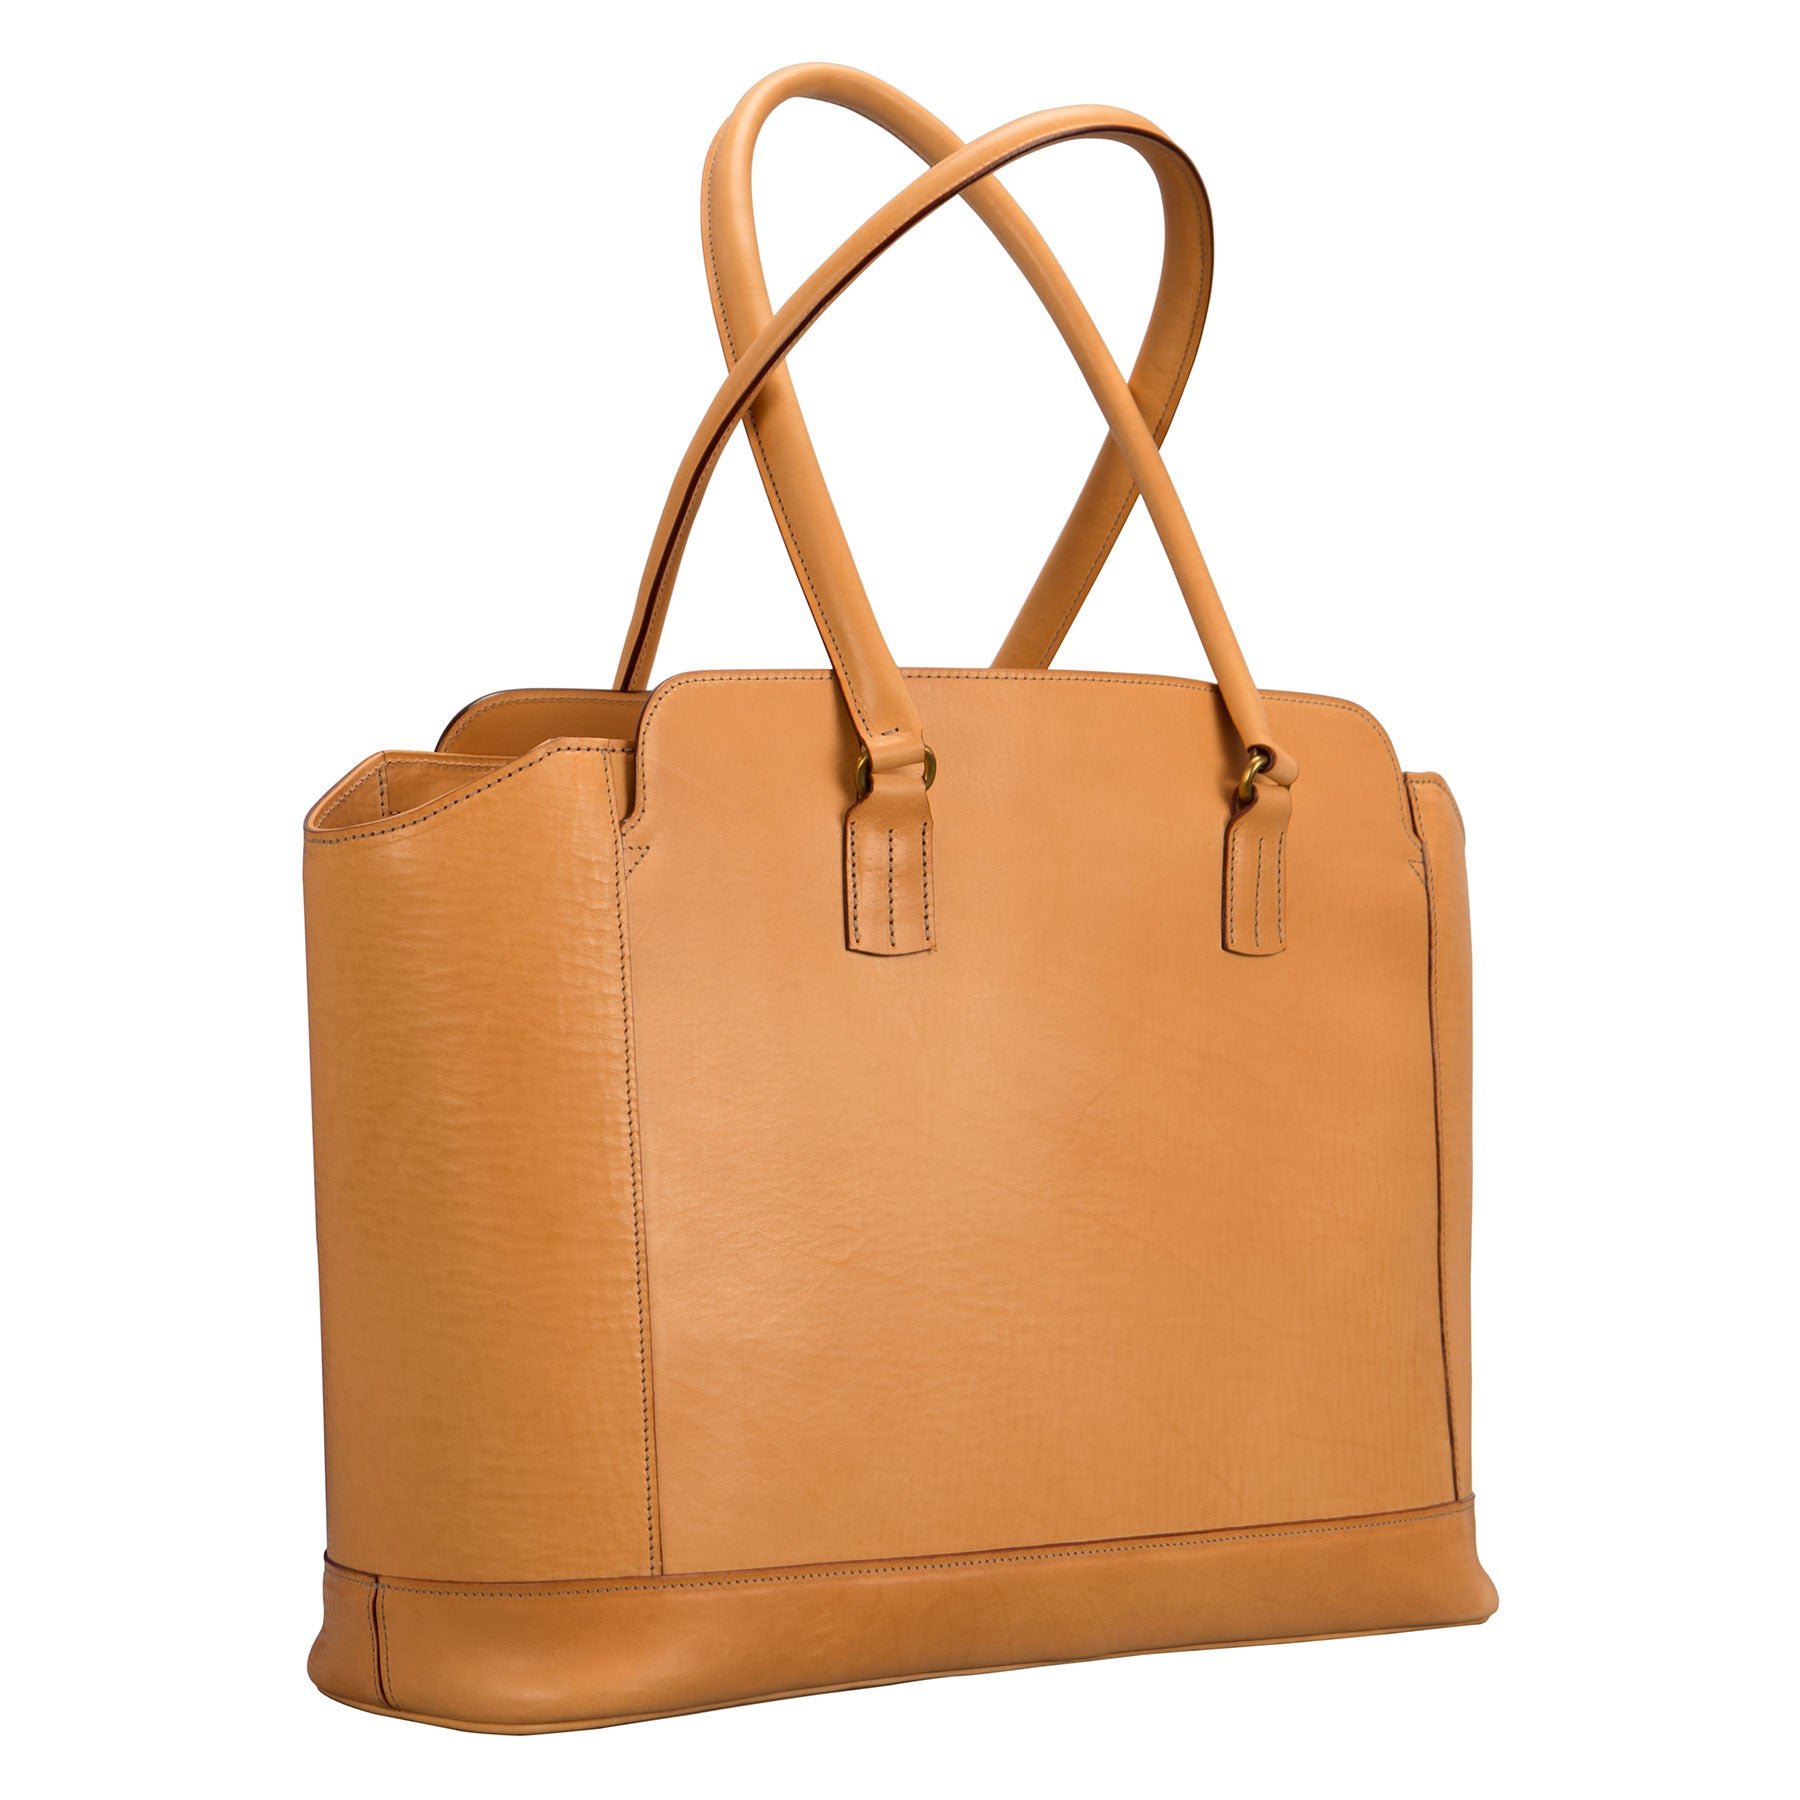 Glaser Designs City Tote with Long Handles in Hand burnished Natural vegetable tanned leather. Solid brass hardware. Made to measure, custom sizes.